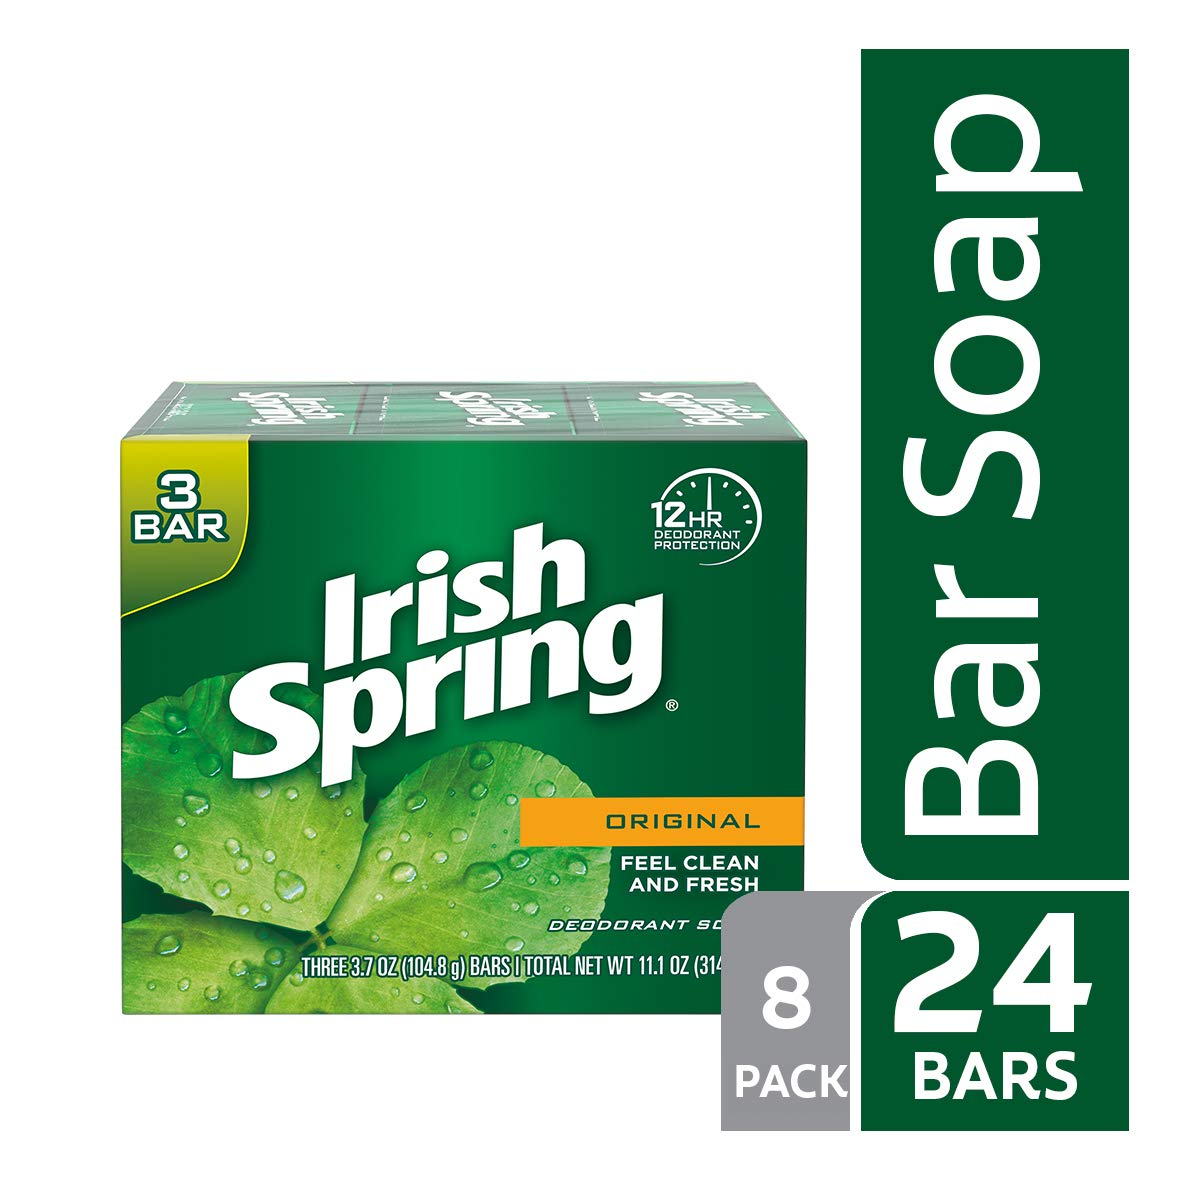 Irish Spring Original Deodorant Bar Soap, 3.7 Ounce, 3 Count (8 pack) by Irish Spring